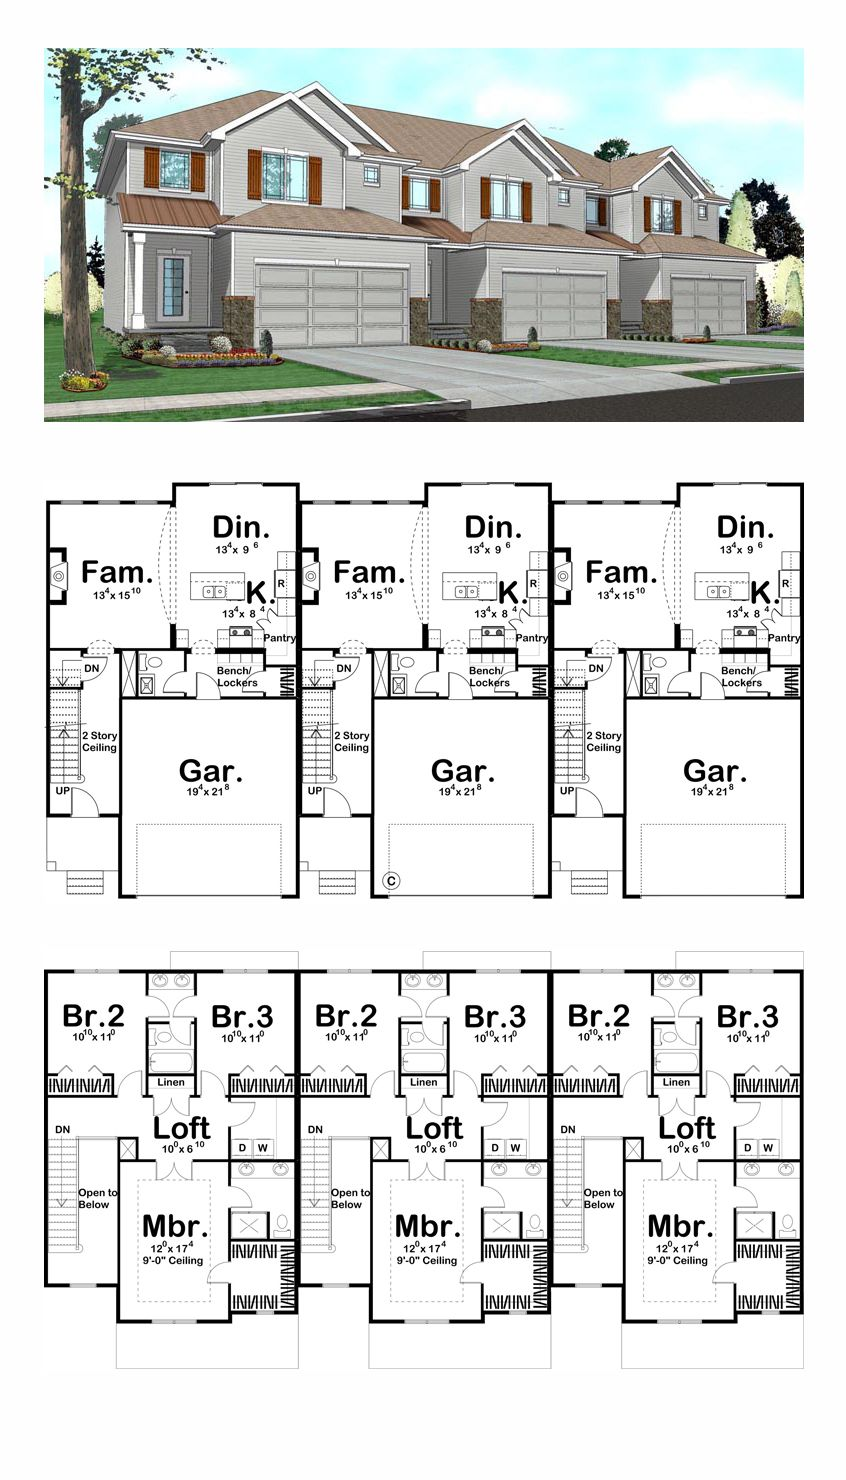 Traditional Style Multi Family Plan 41141 With 9 Bed 9 Bath 6 Car Garage Family House Plans Duplex House Plans Duplex House